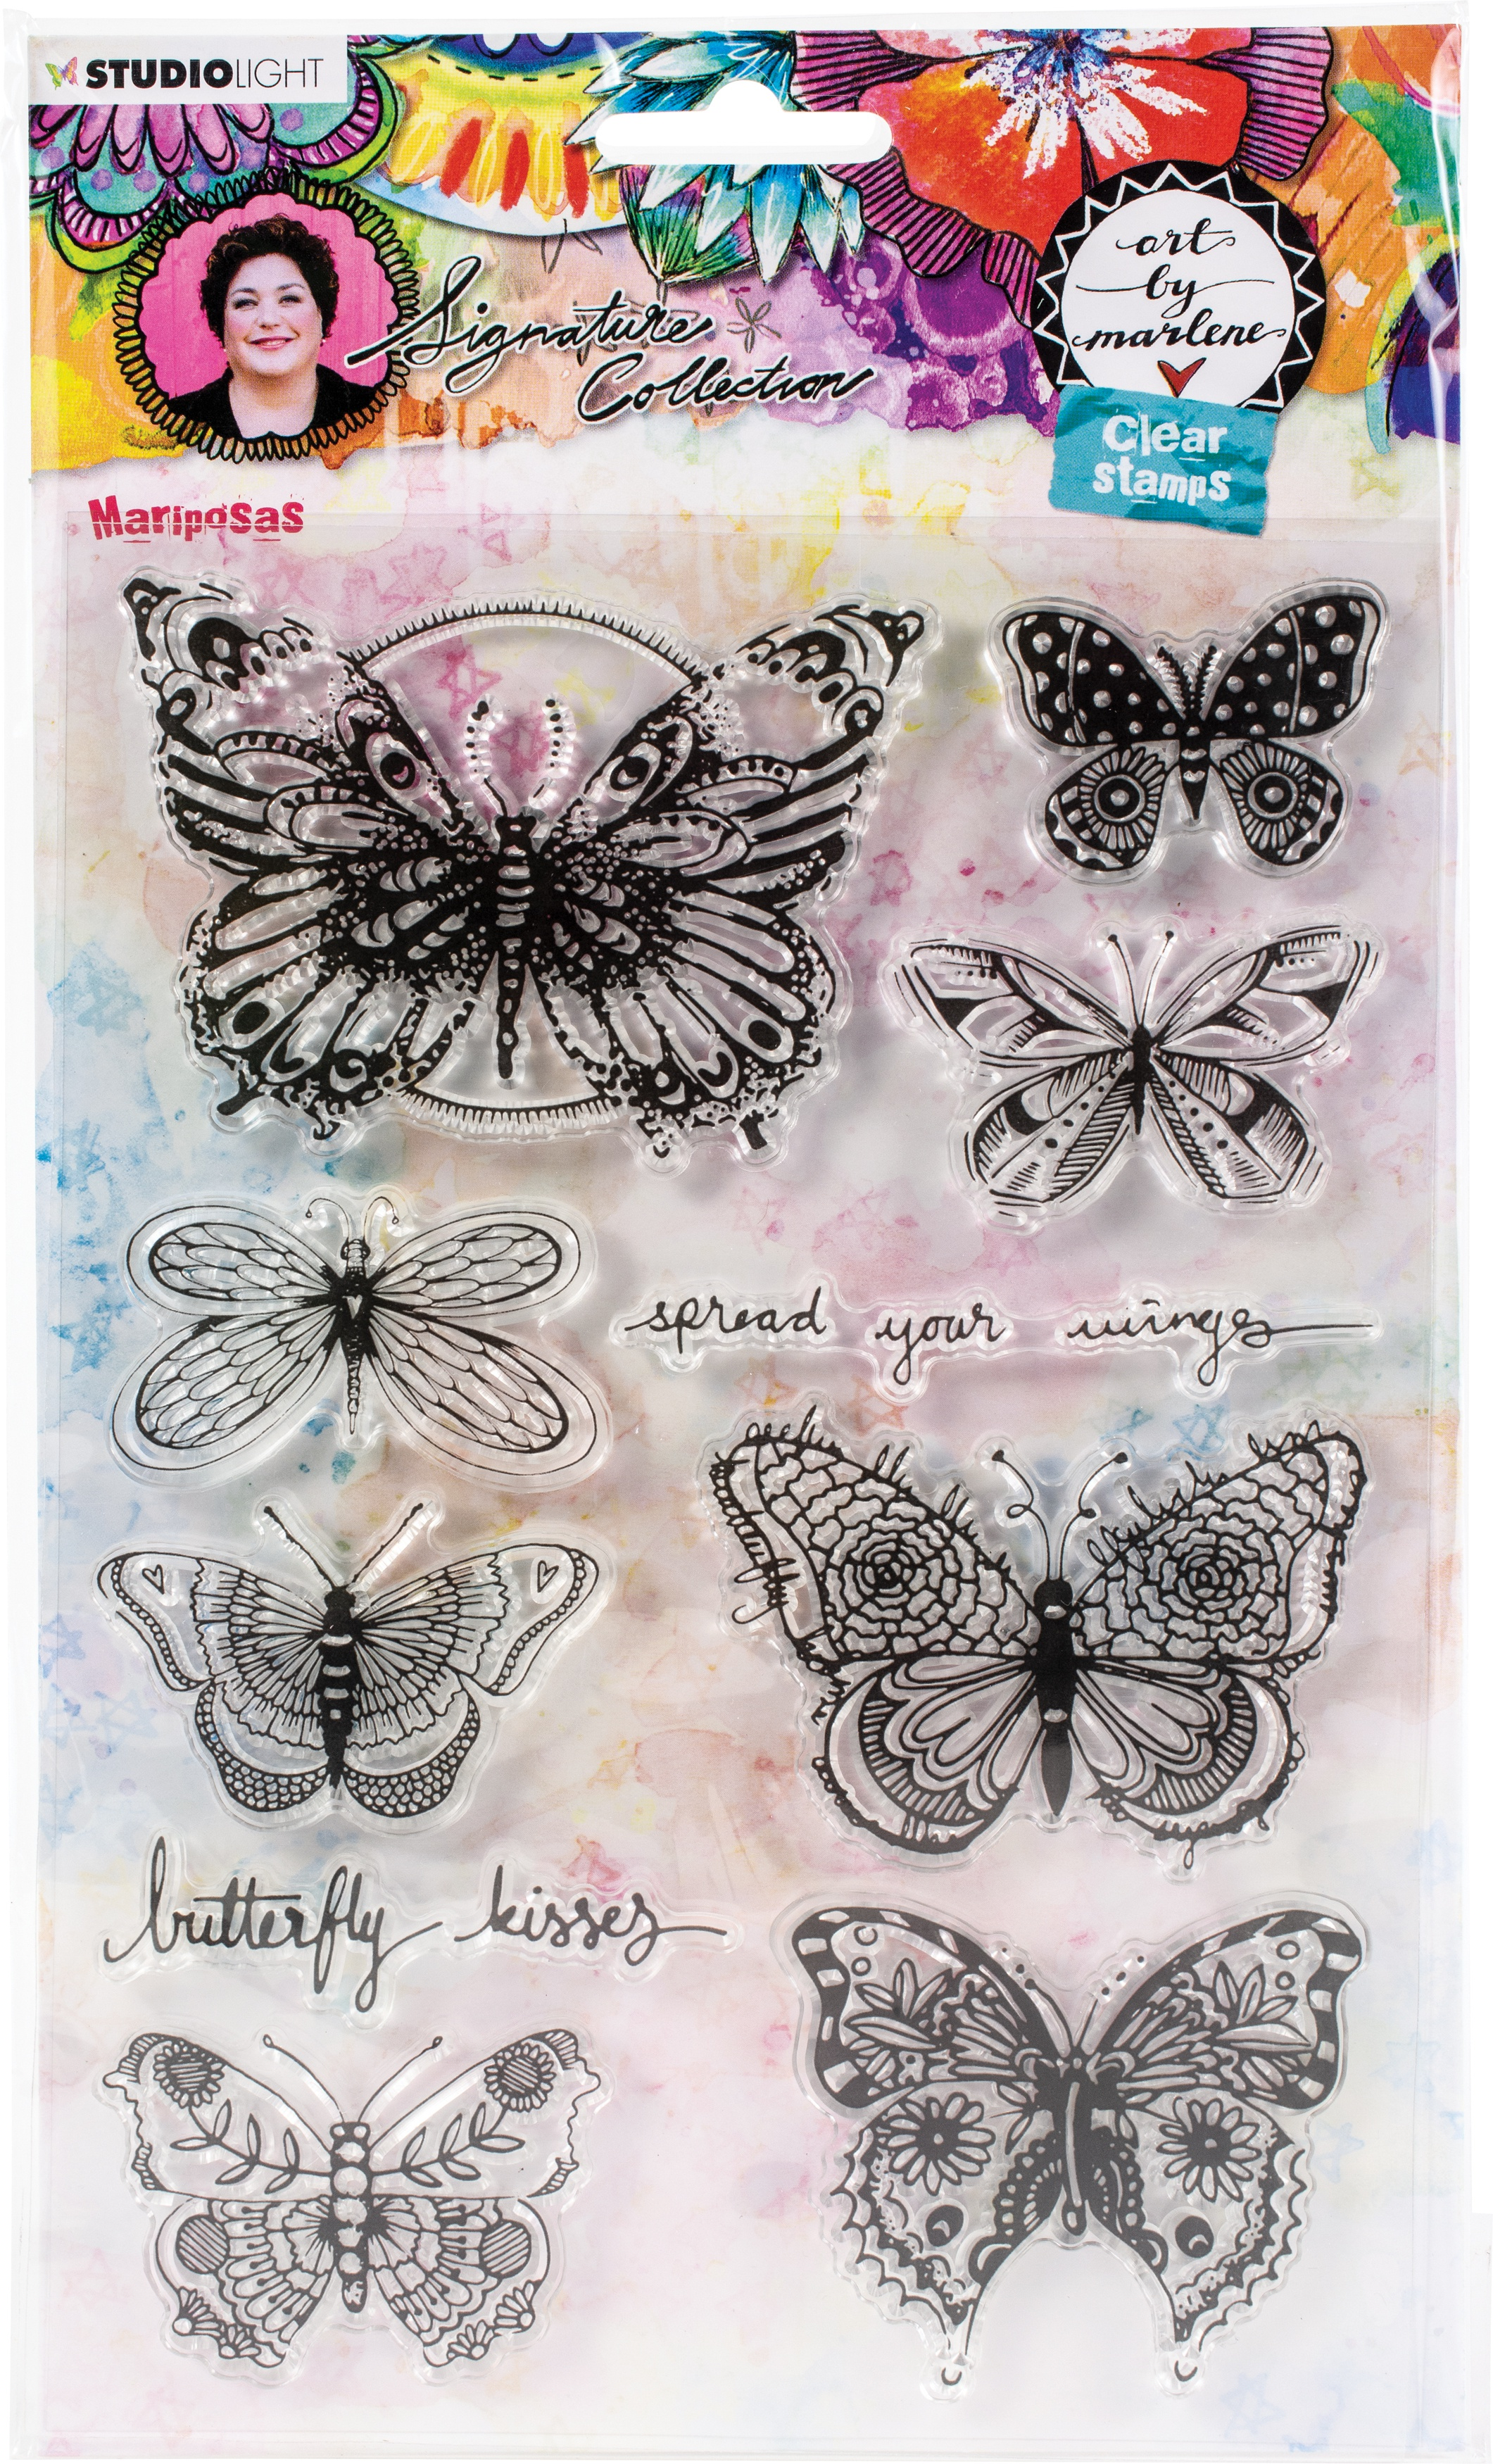 Art By Marlene - 5.0 Clear Stamps - NR. 49